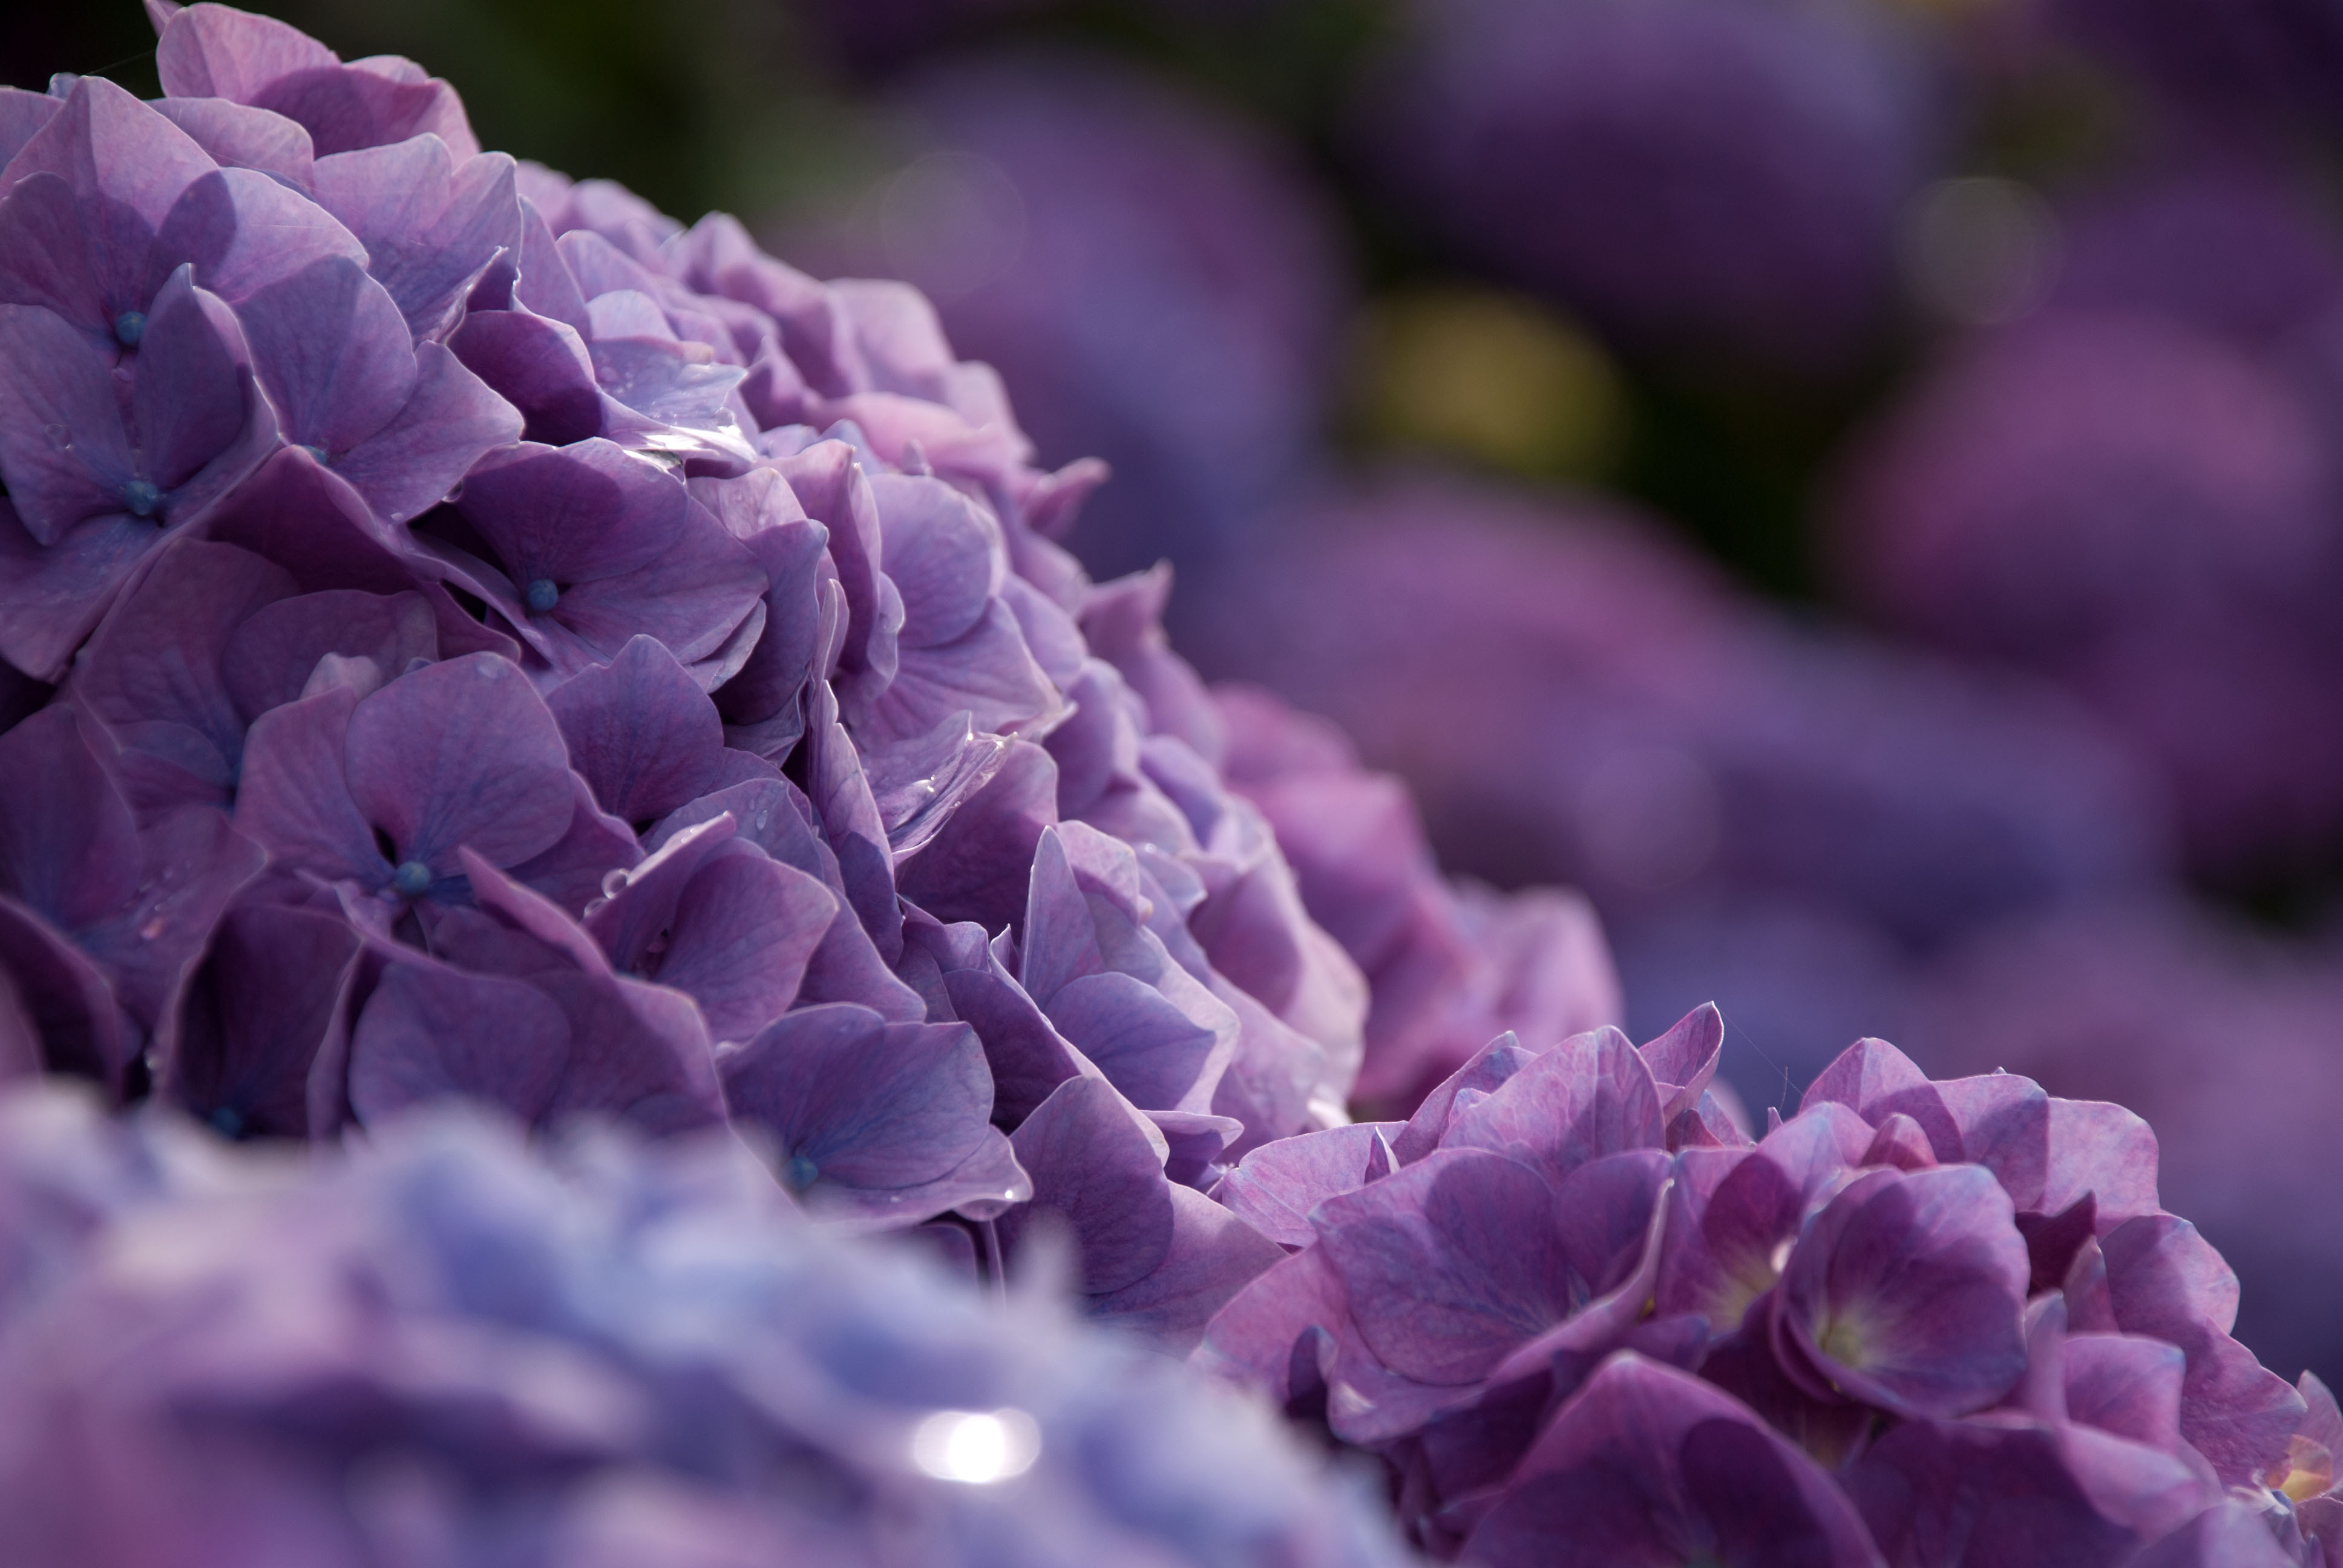 hydrangea 4k ultra hd wallpaper and background 3872x2592